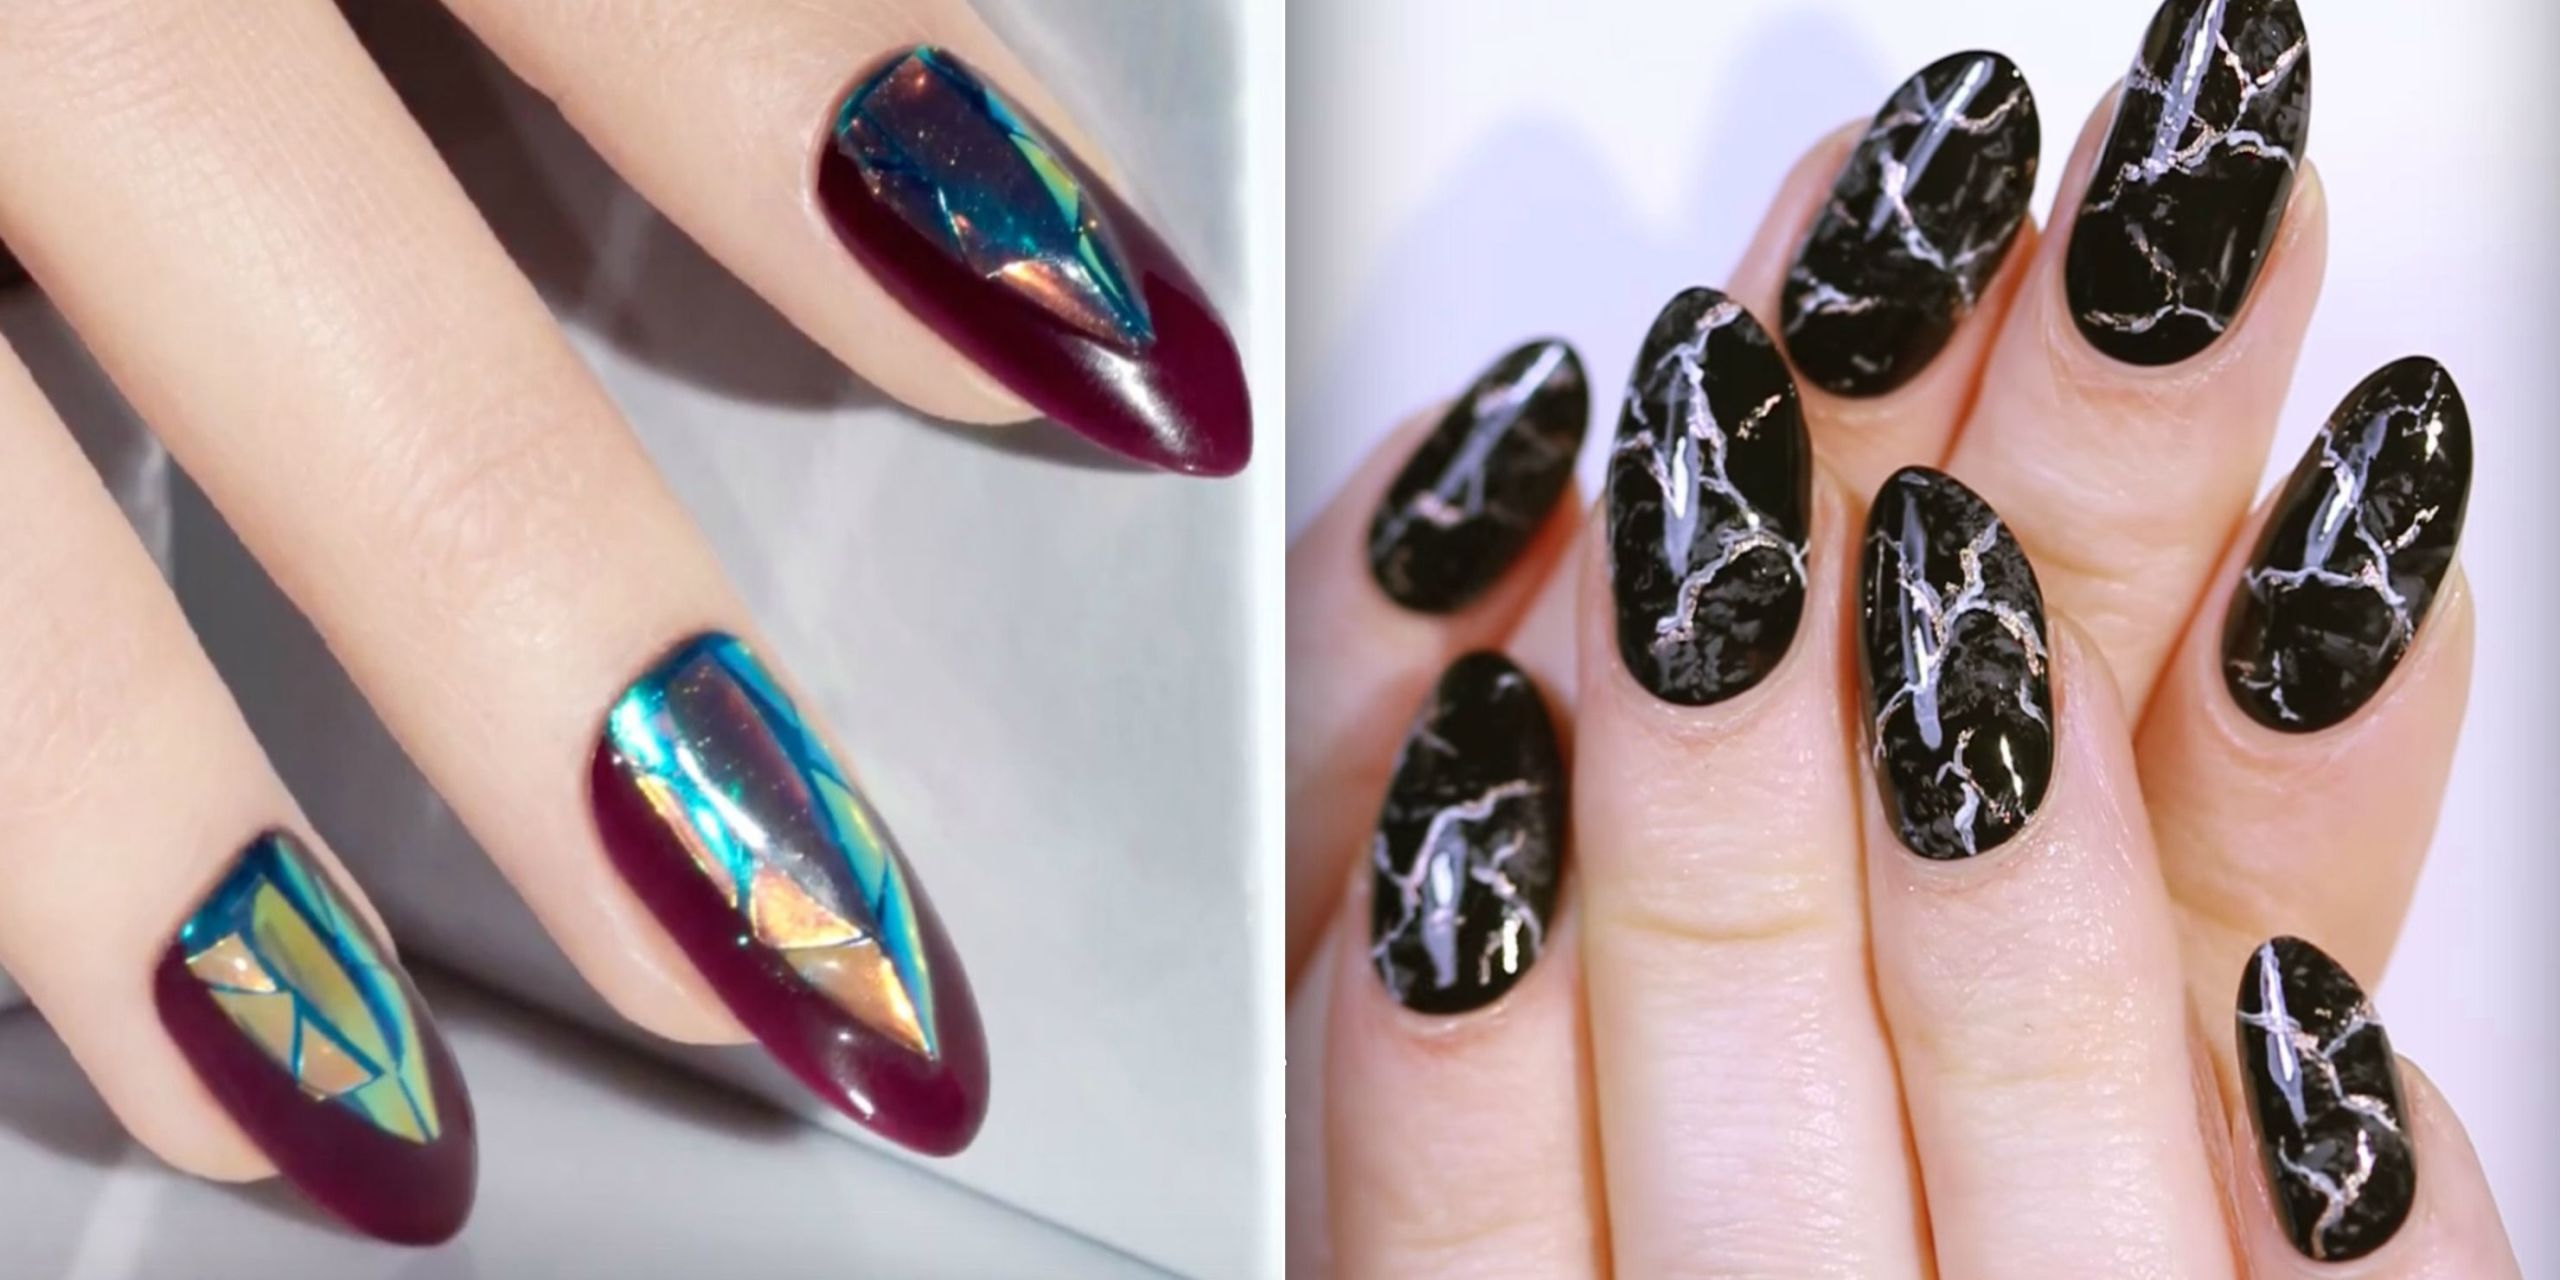 Exceptional From Dark And Moody Motifs To Back To School Designs, These Nail Art Ideas  Will Have You U2014 And Your Nails U2014 Covered All Autumn Long.